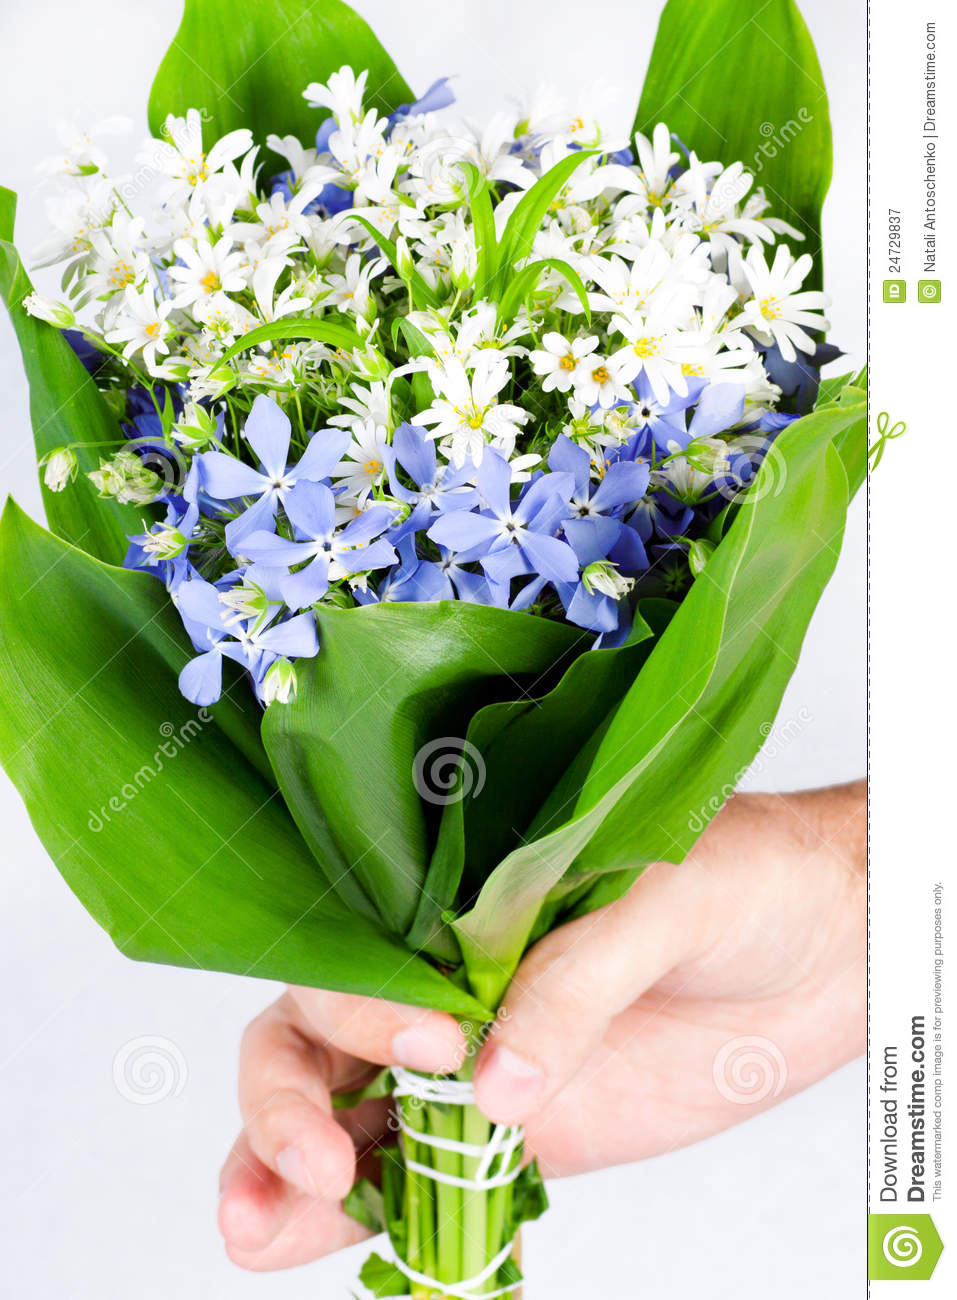 Hand Giving A Bouquet Of Spring Flowers Stock Image Image Of Herb